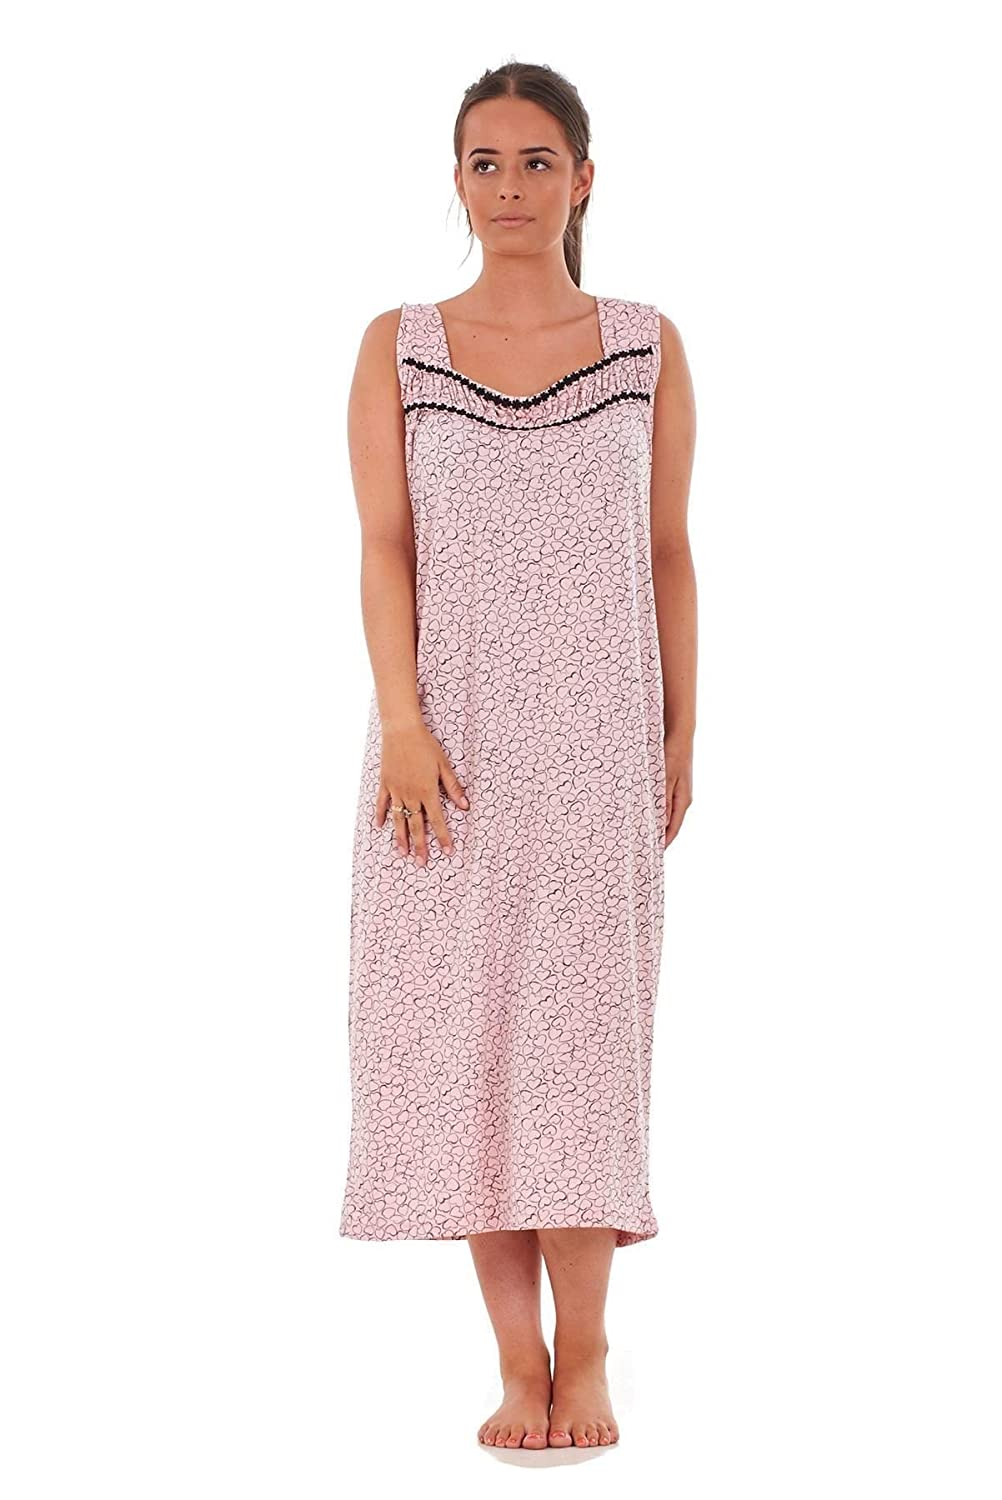 Bay eCom UK Ladies Nightwear Heart Polka Print 100% Cotton Sleeveless Long Nightdress M-XXXL Does not Apply